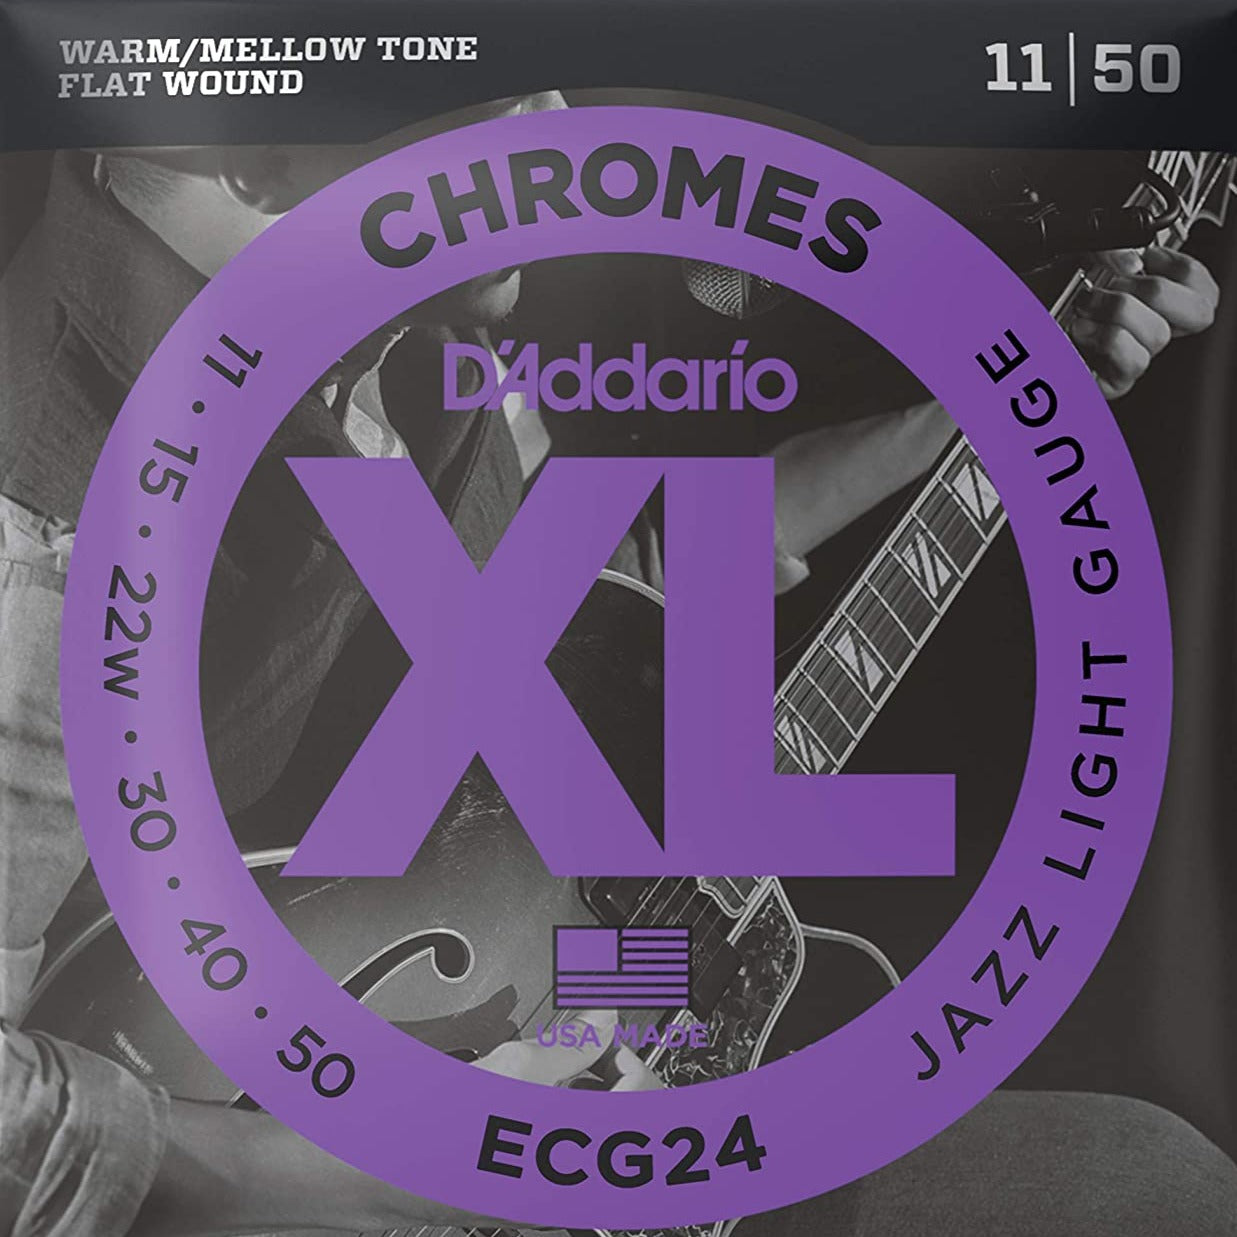 D'Addario ECG24 XL Chromes Flatwound Electric Guitar Strings Jazz Light 11-50